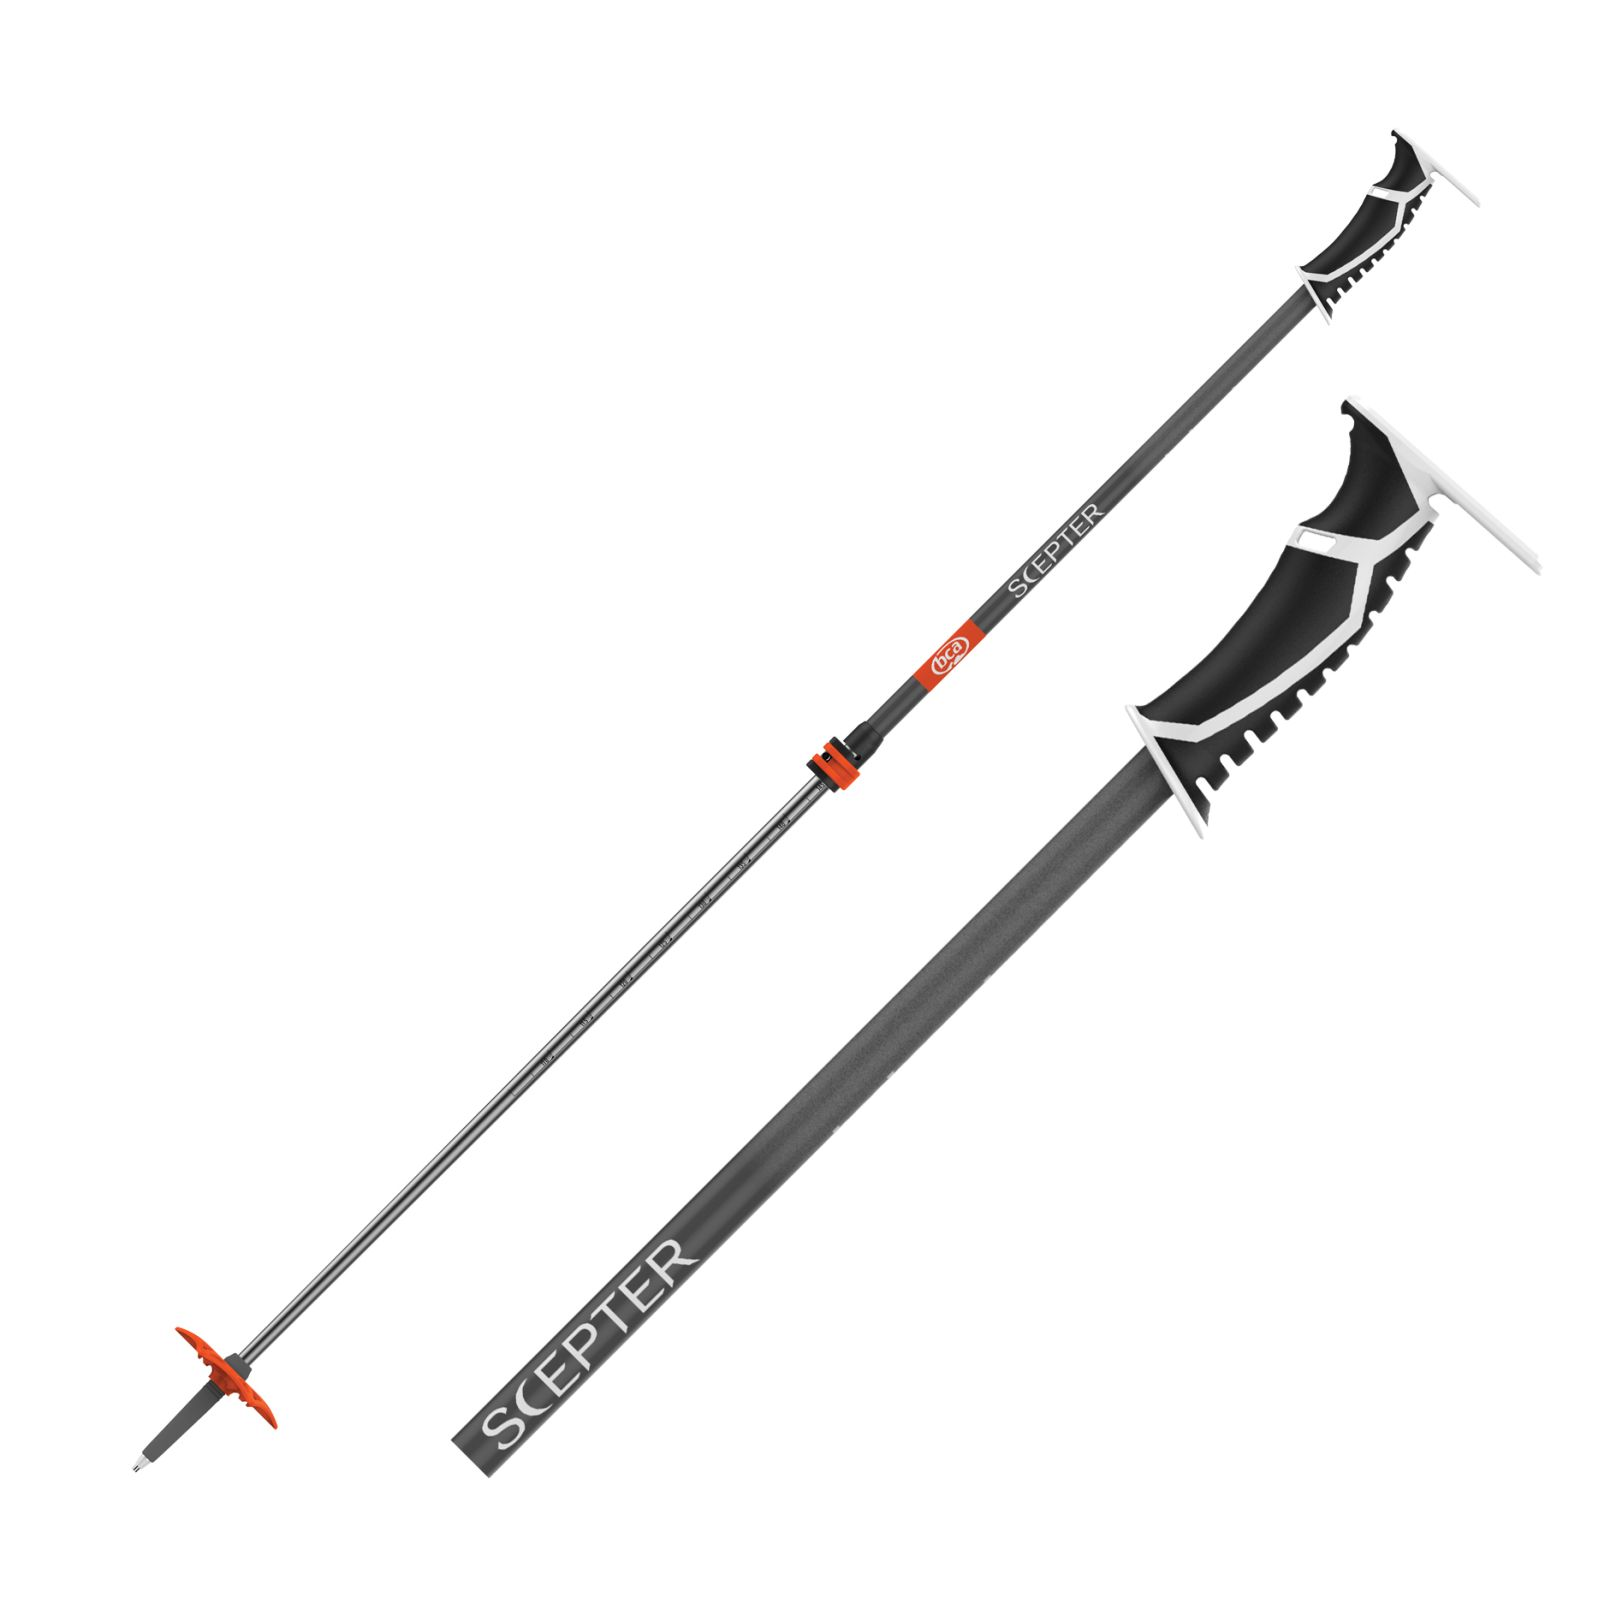 Backcountry Access Scepter Aluminum